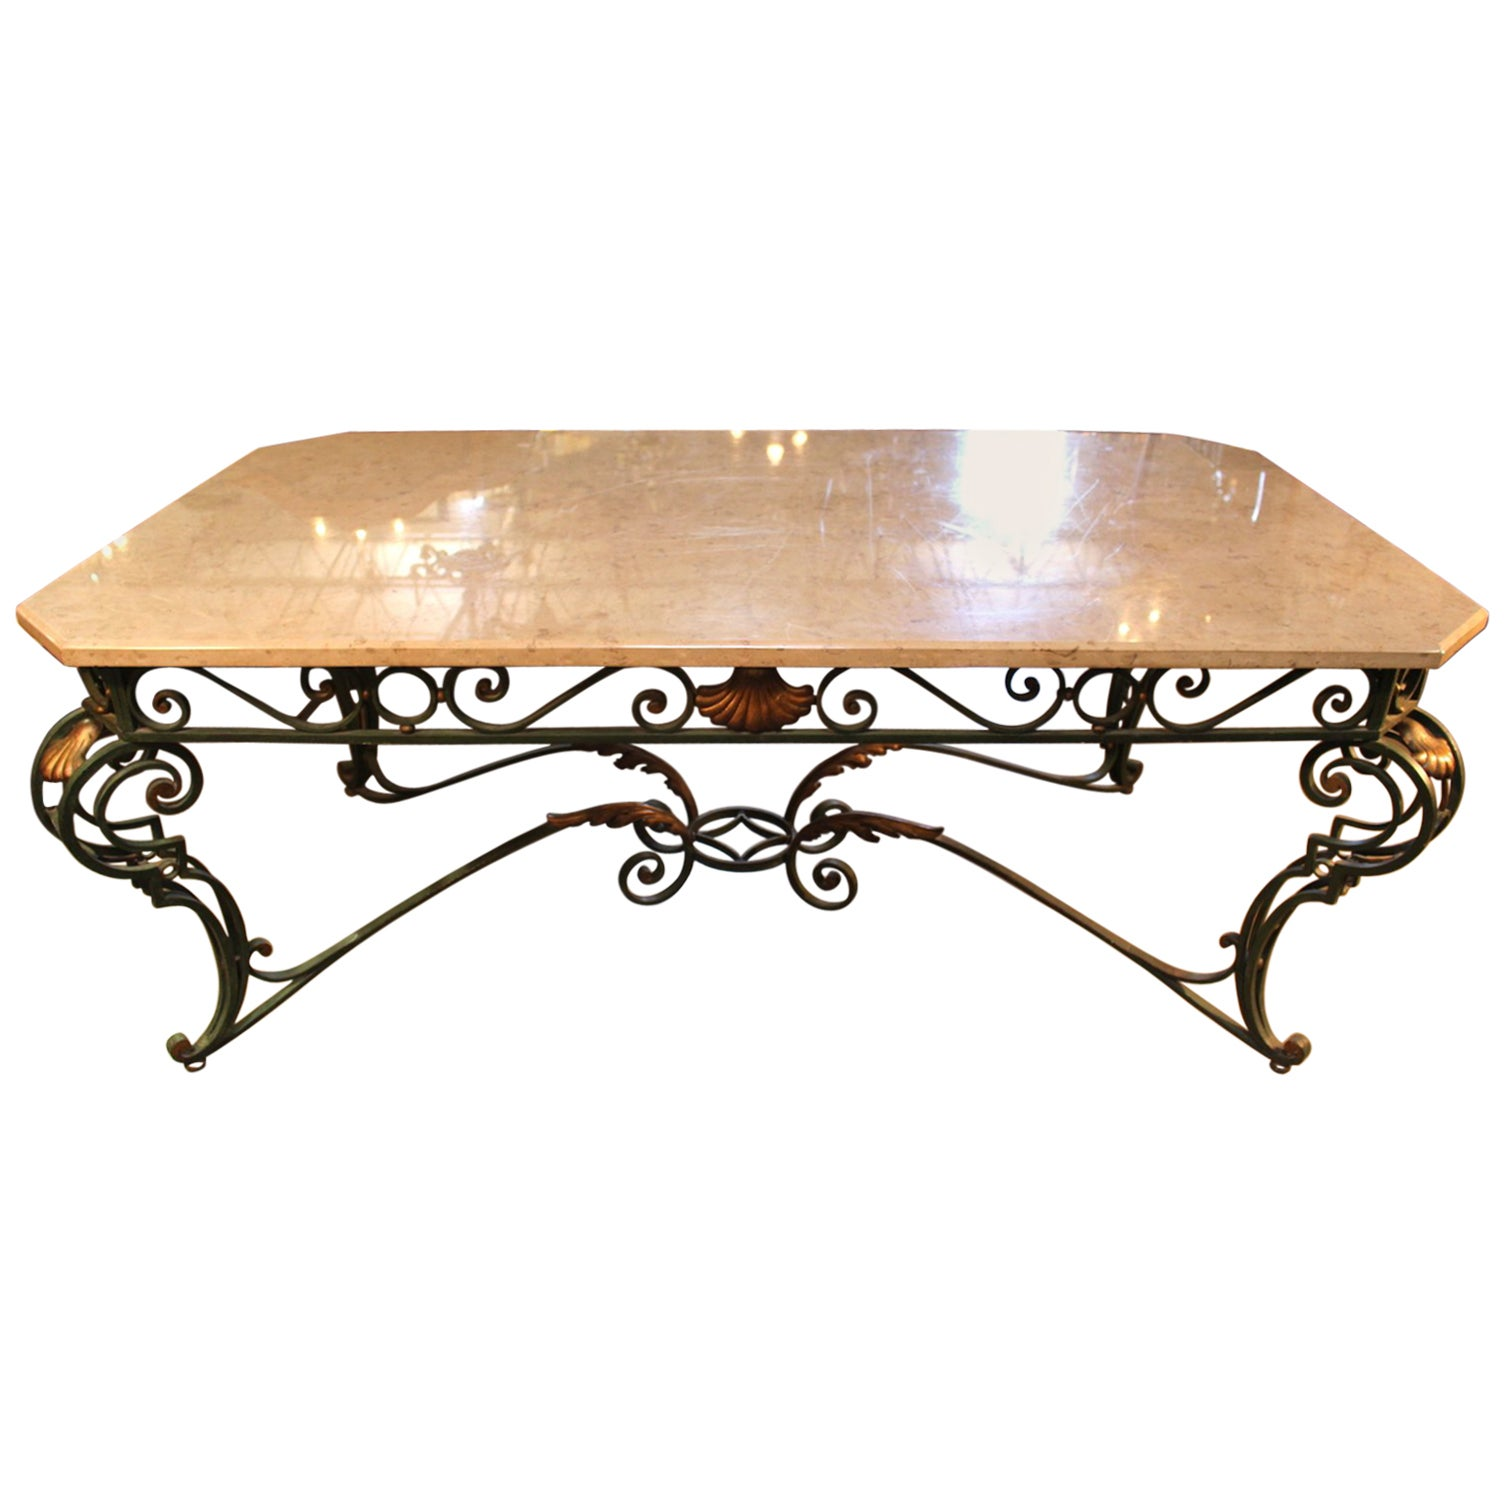 French Louis XV Style Iron and Marble Dining Table